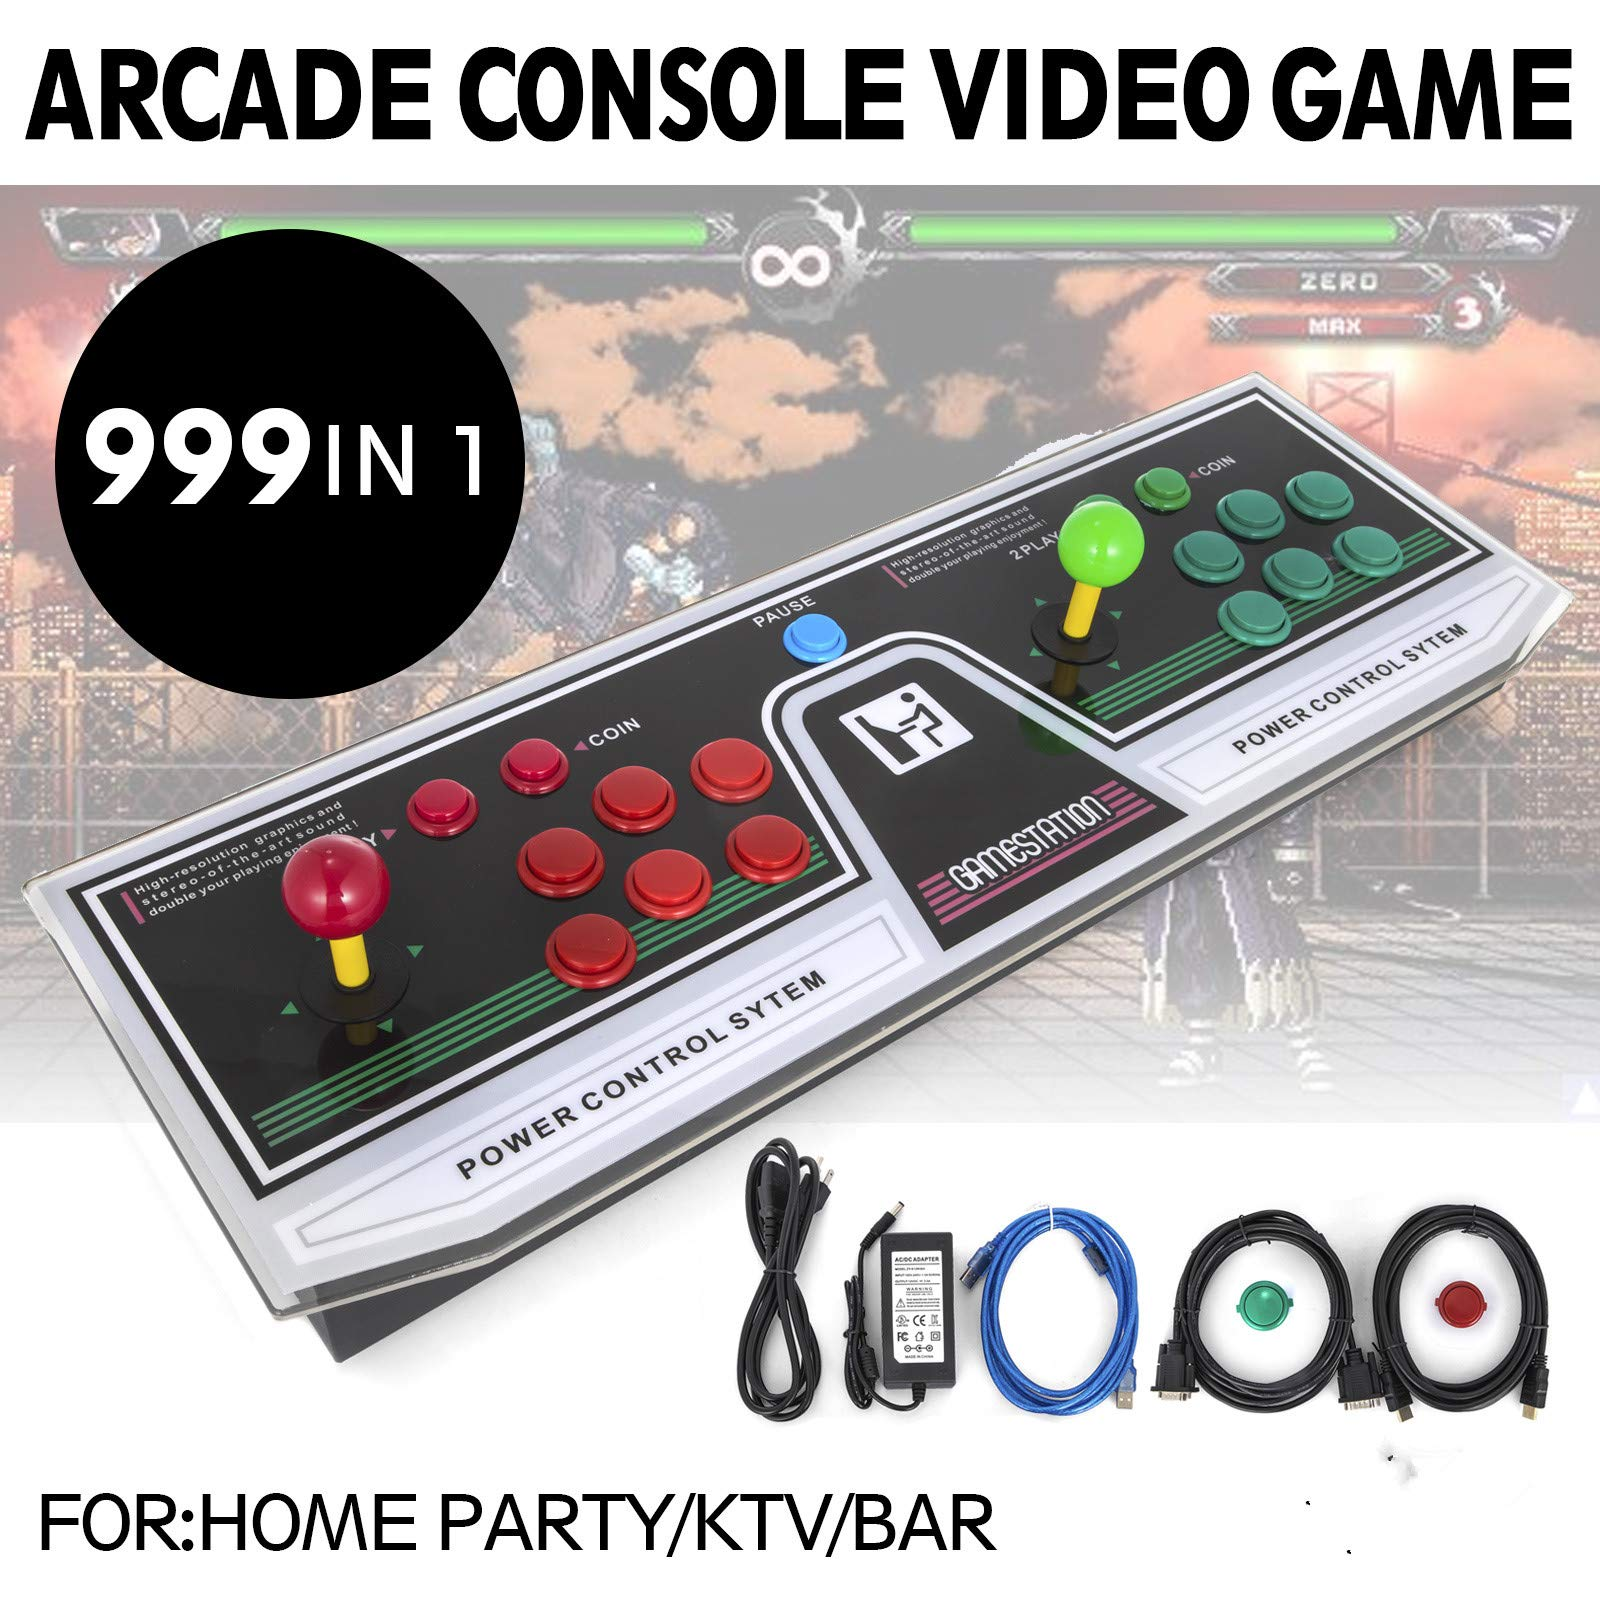 Happybuy Arcade Game Console 1280P Games 1500 in 1 Pandora's Box 2 Players Arcade Machine with Arcade Joystick Support Expand Games for PC / Laptop / TV / PS4